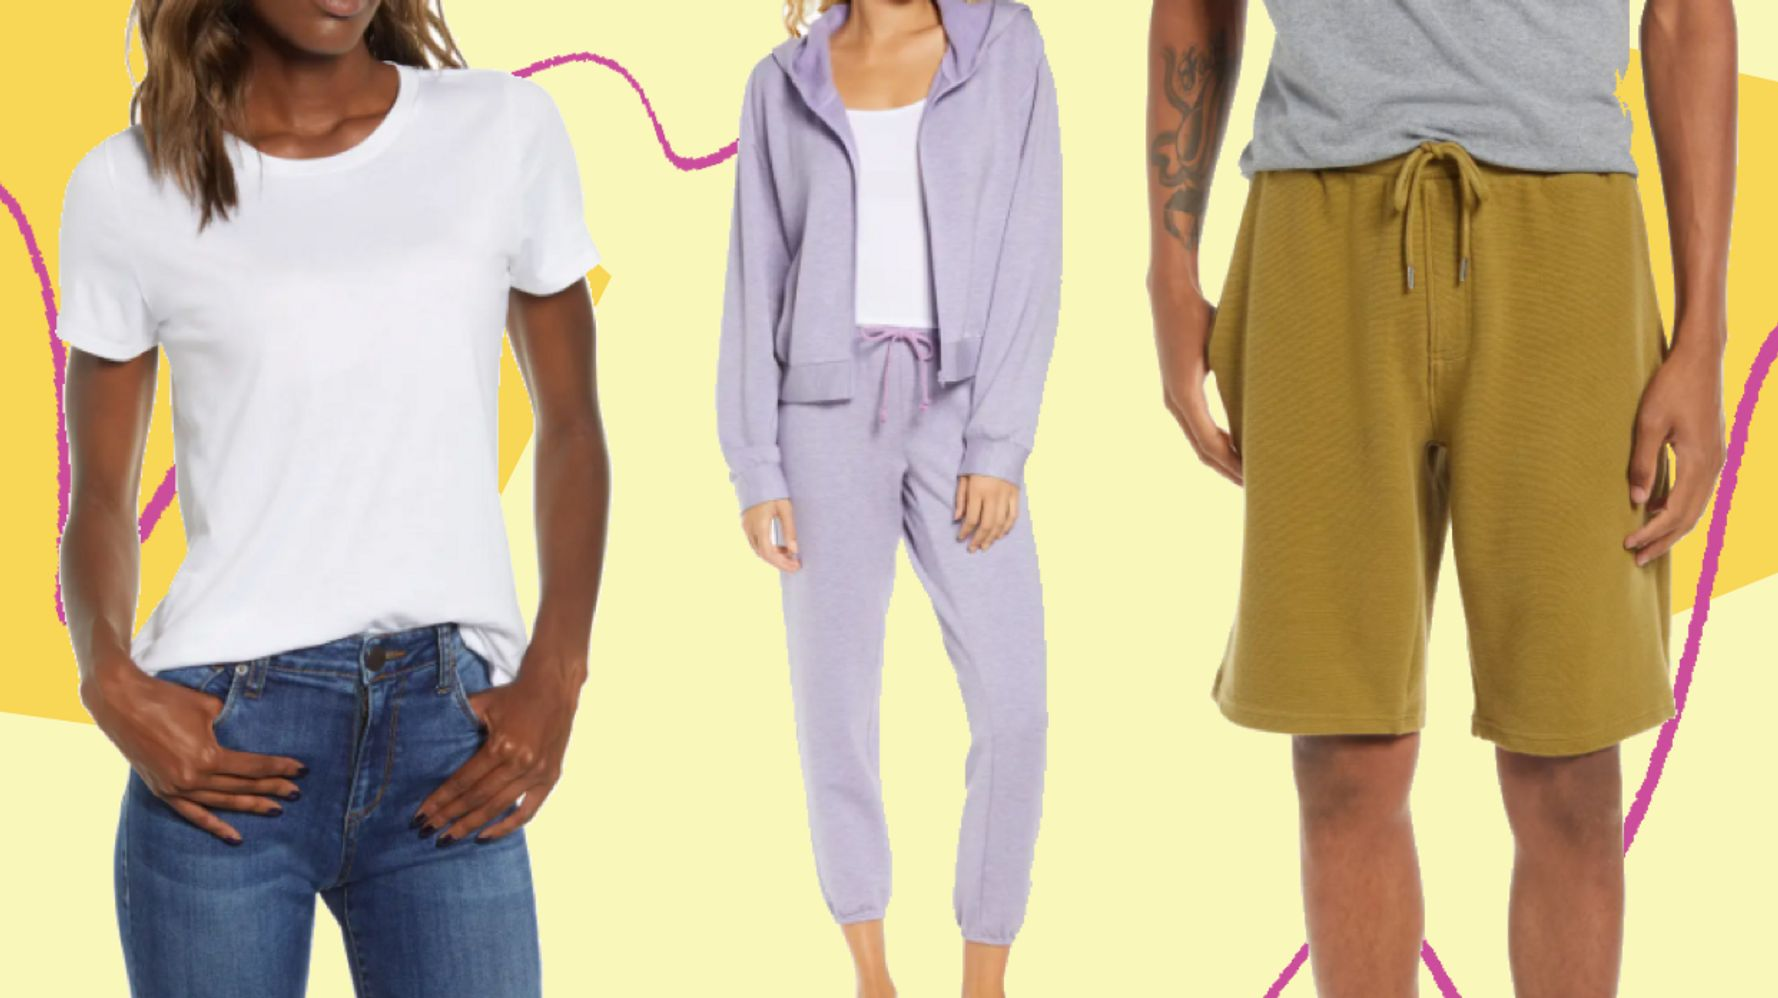 Spotted: A Nordstrom Sale On Knit Basics And Loungewear 1